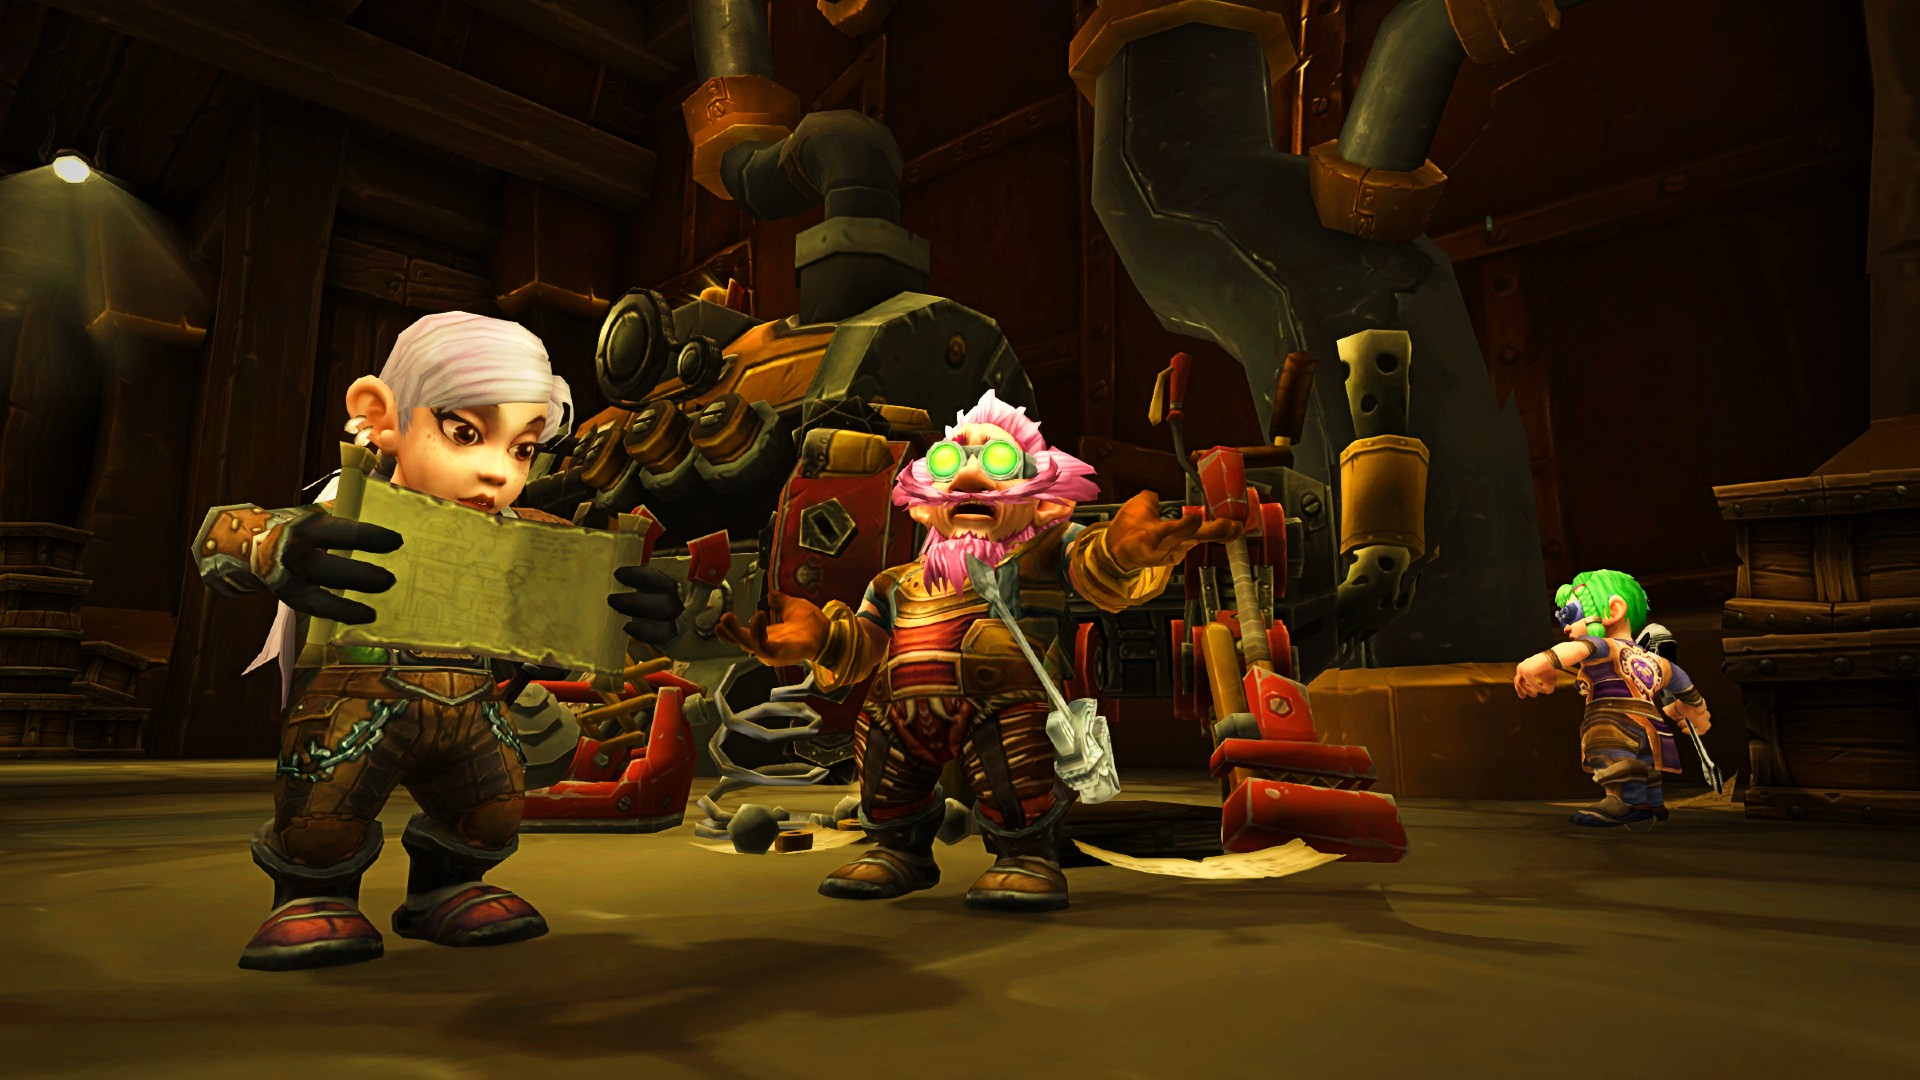 World of Warcraft's big 9.0.5 patch starts rolling out today